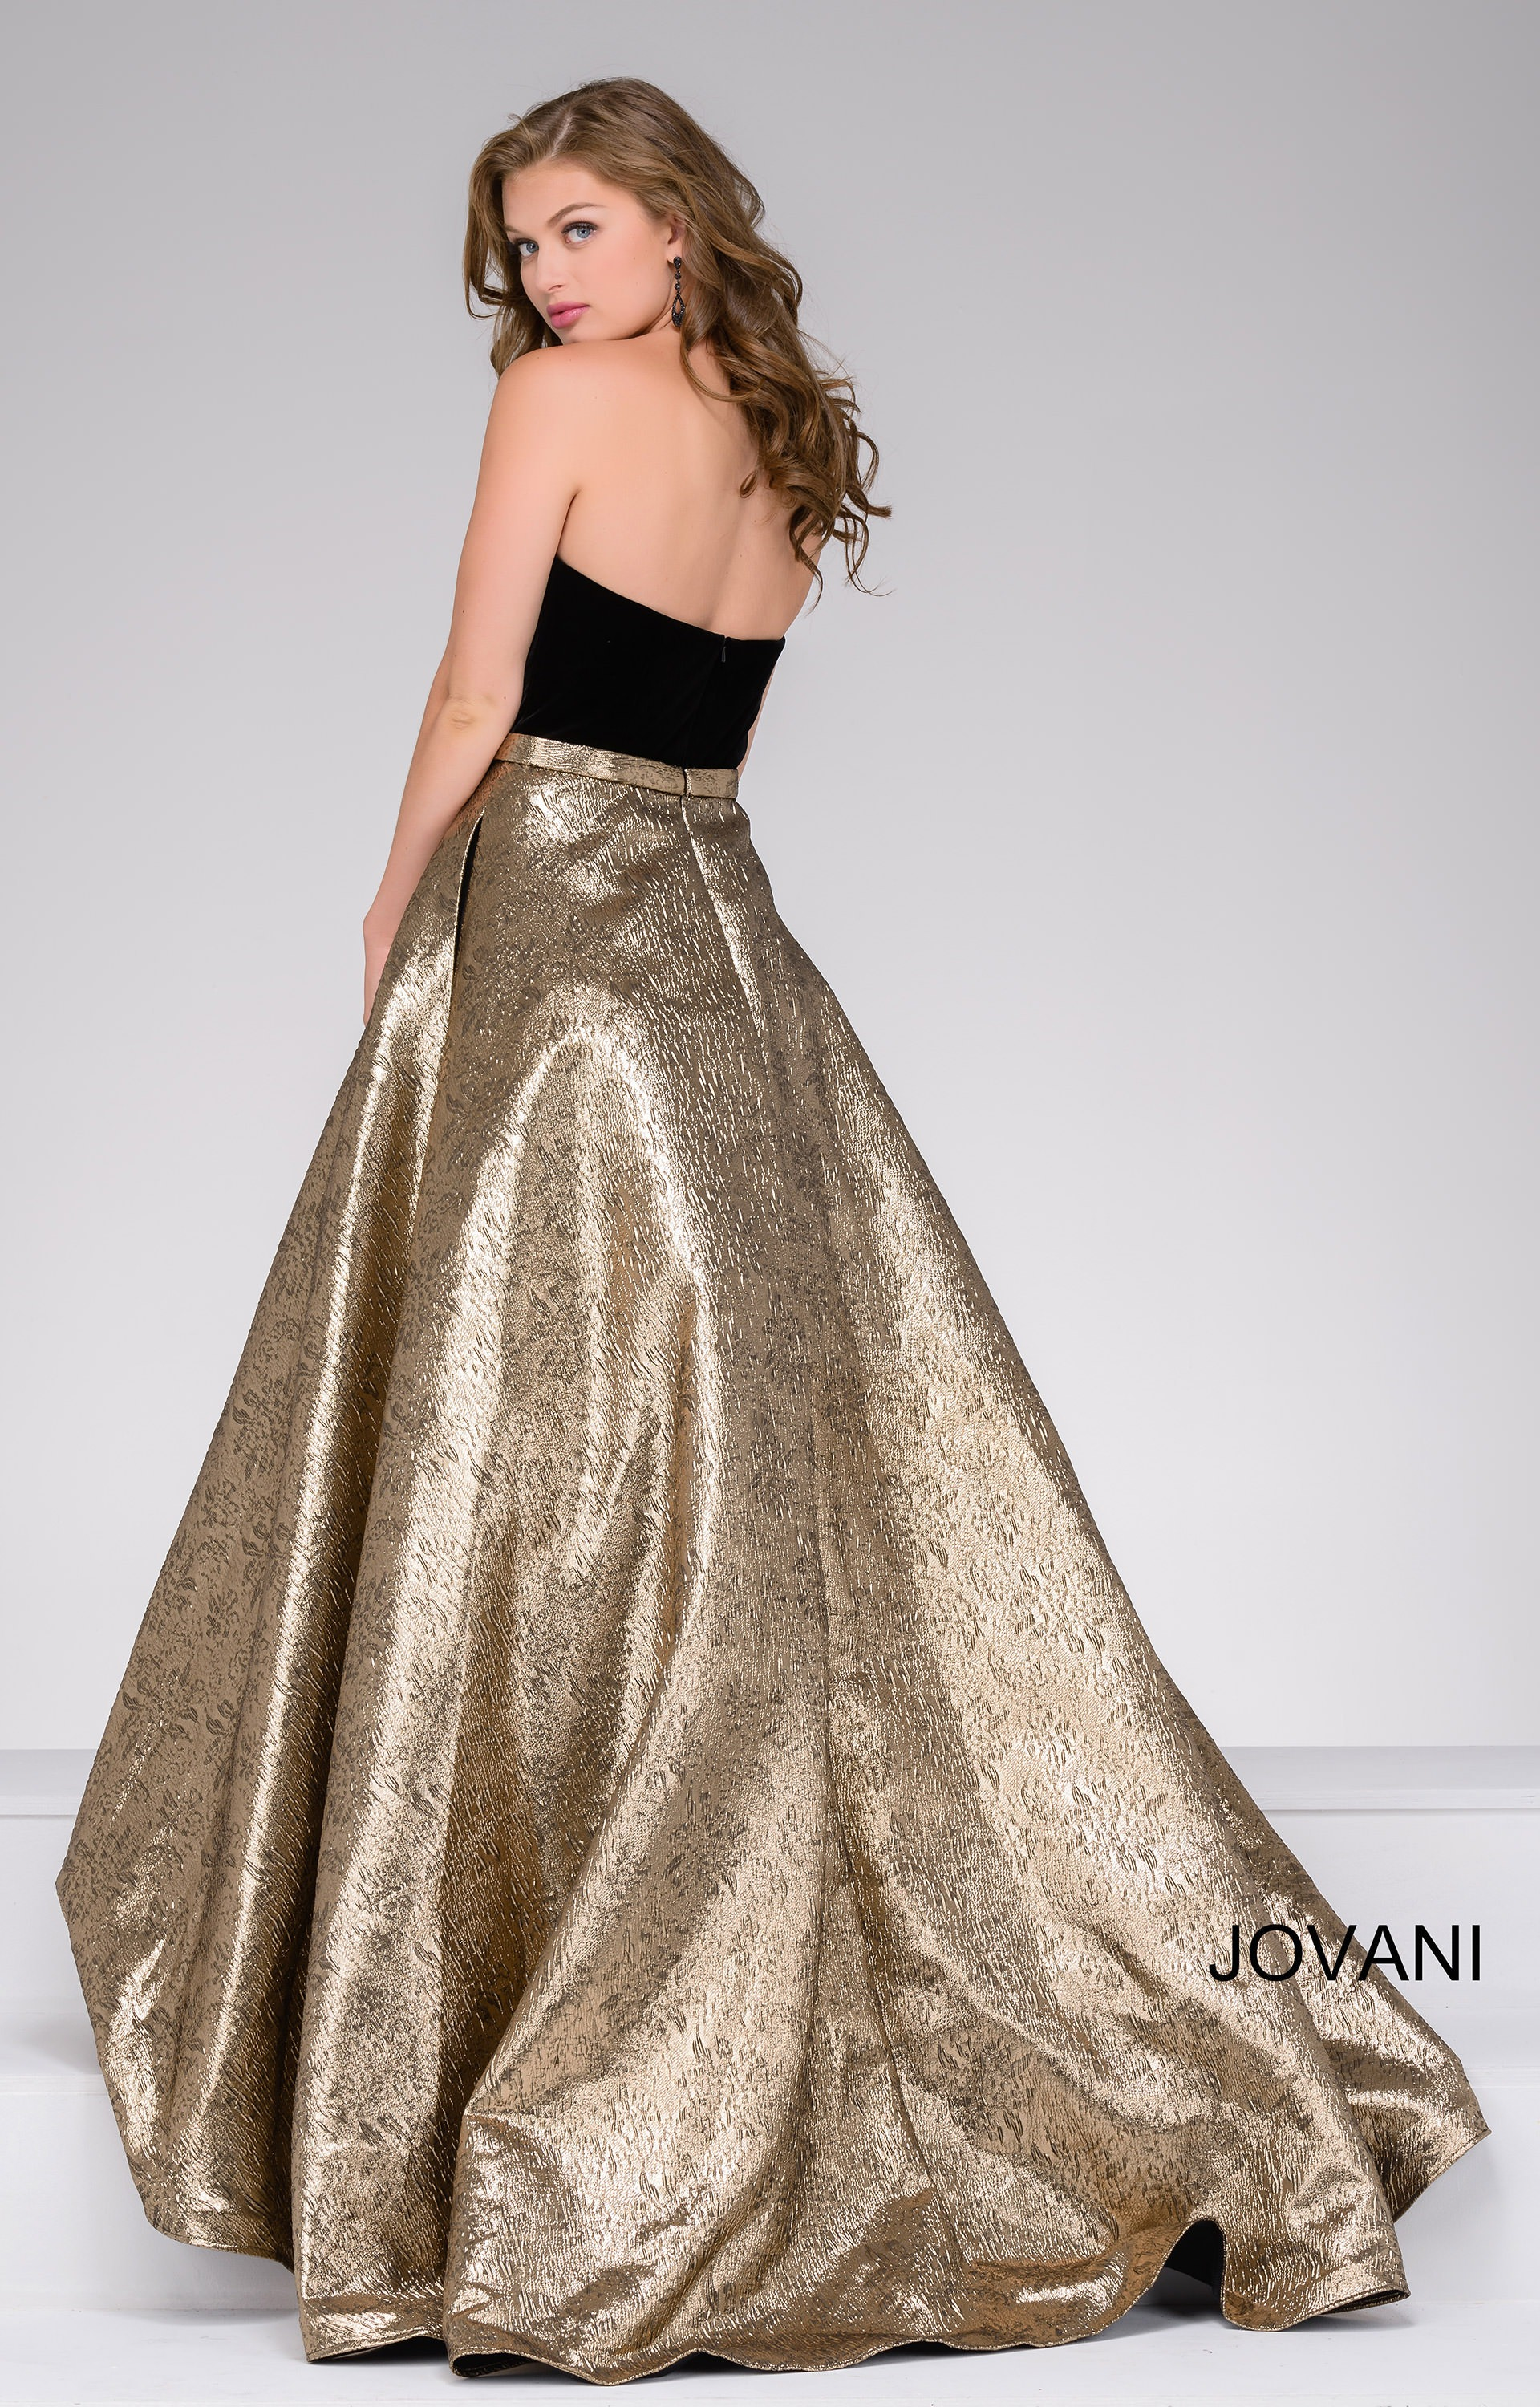 Jovani 47982 Velvet Strapless Top With A Metallic Skirt